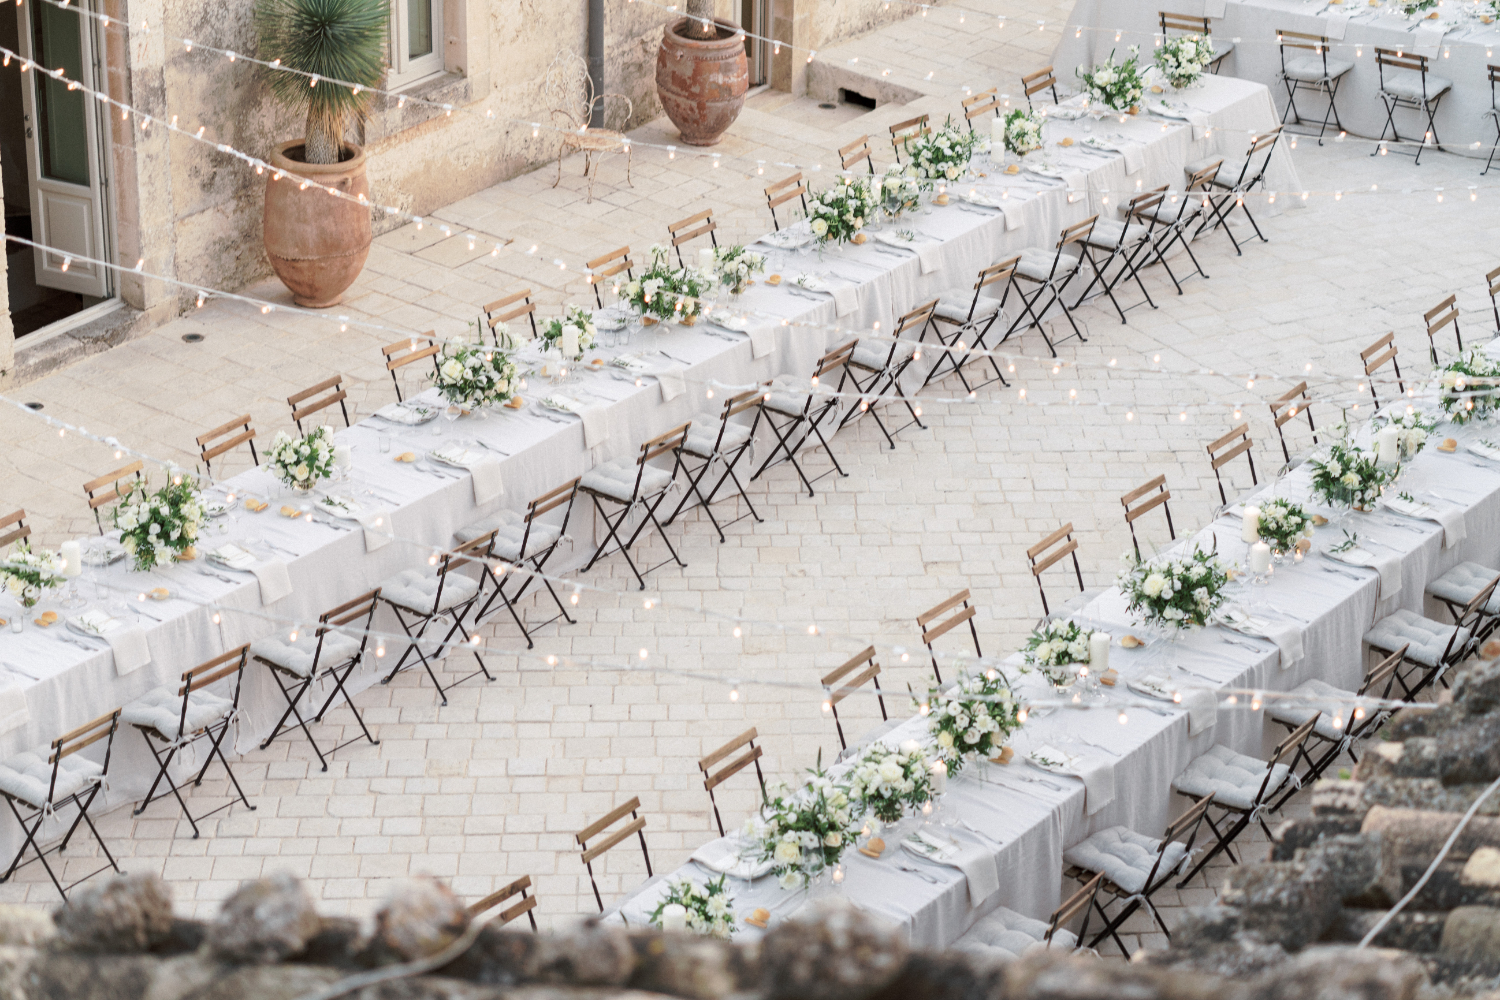 destination wedding in Italy - tuscany wedding venue decorated with fairy lights and long table for a wedding celebration